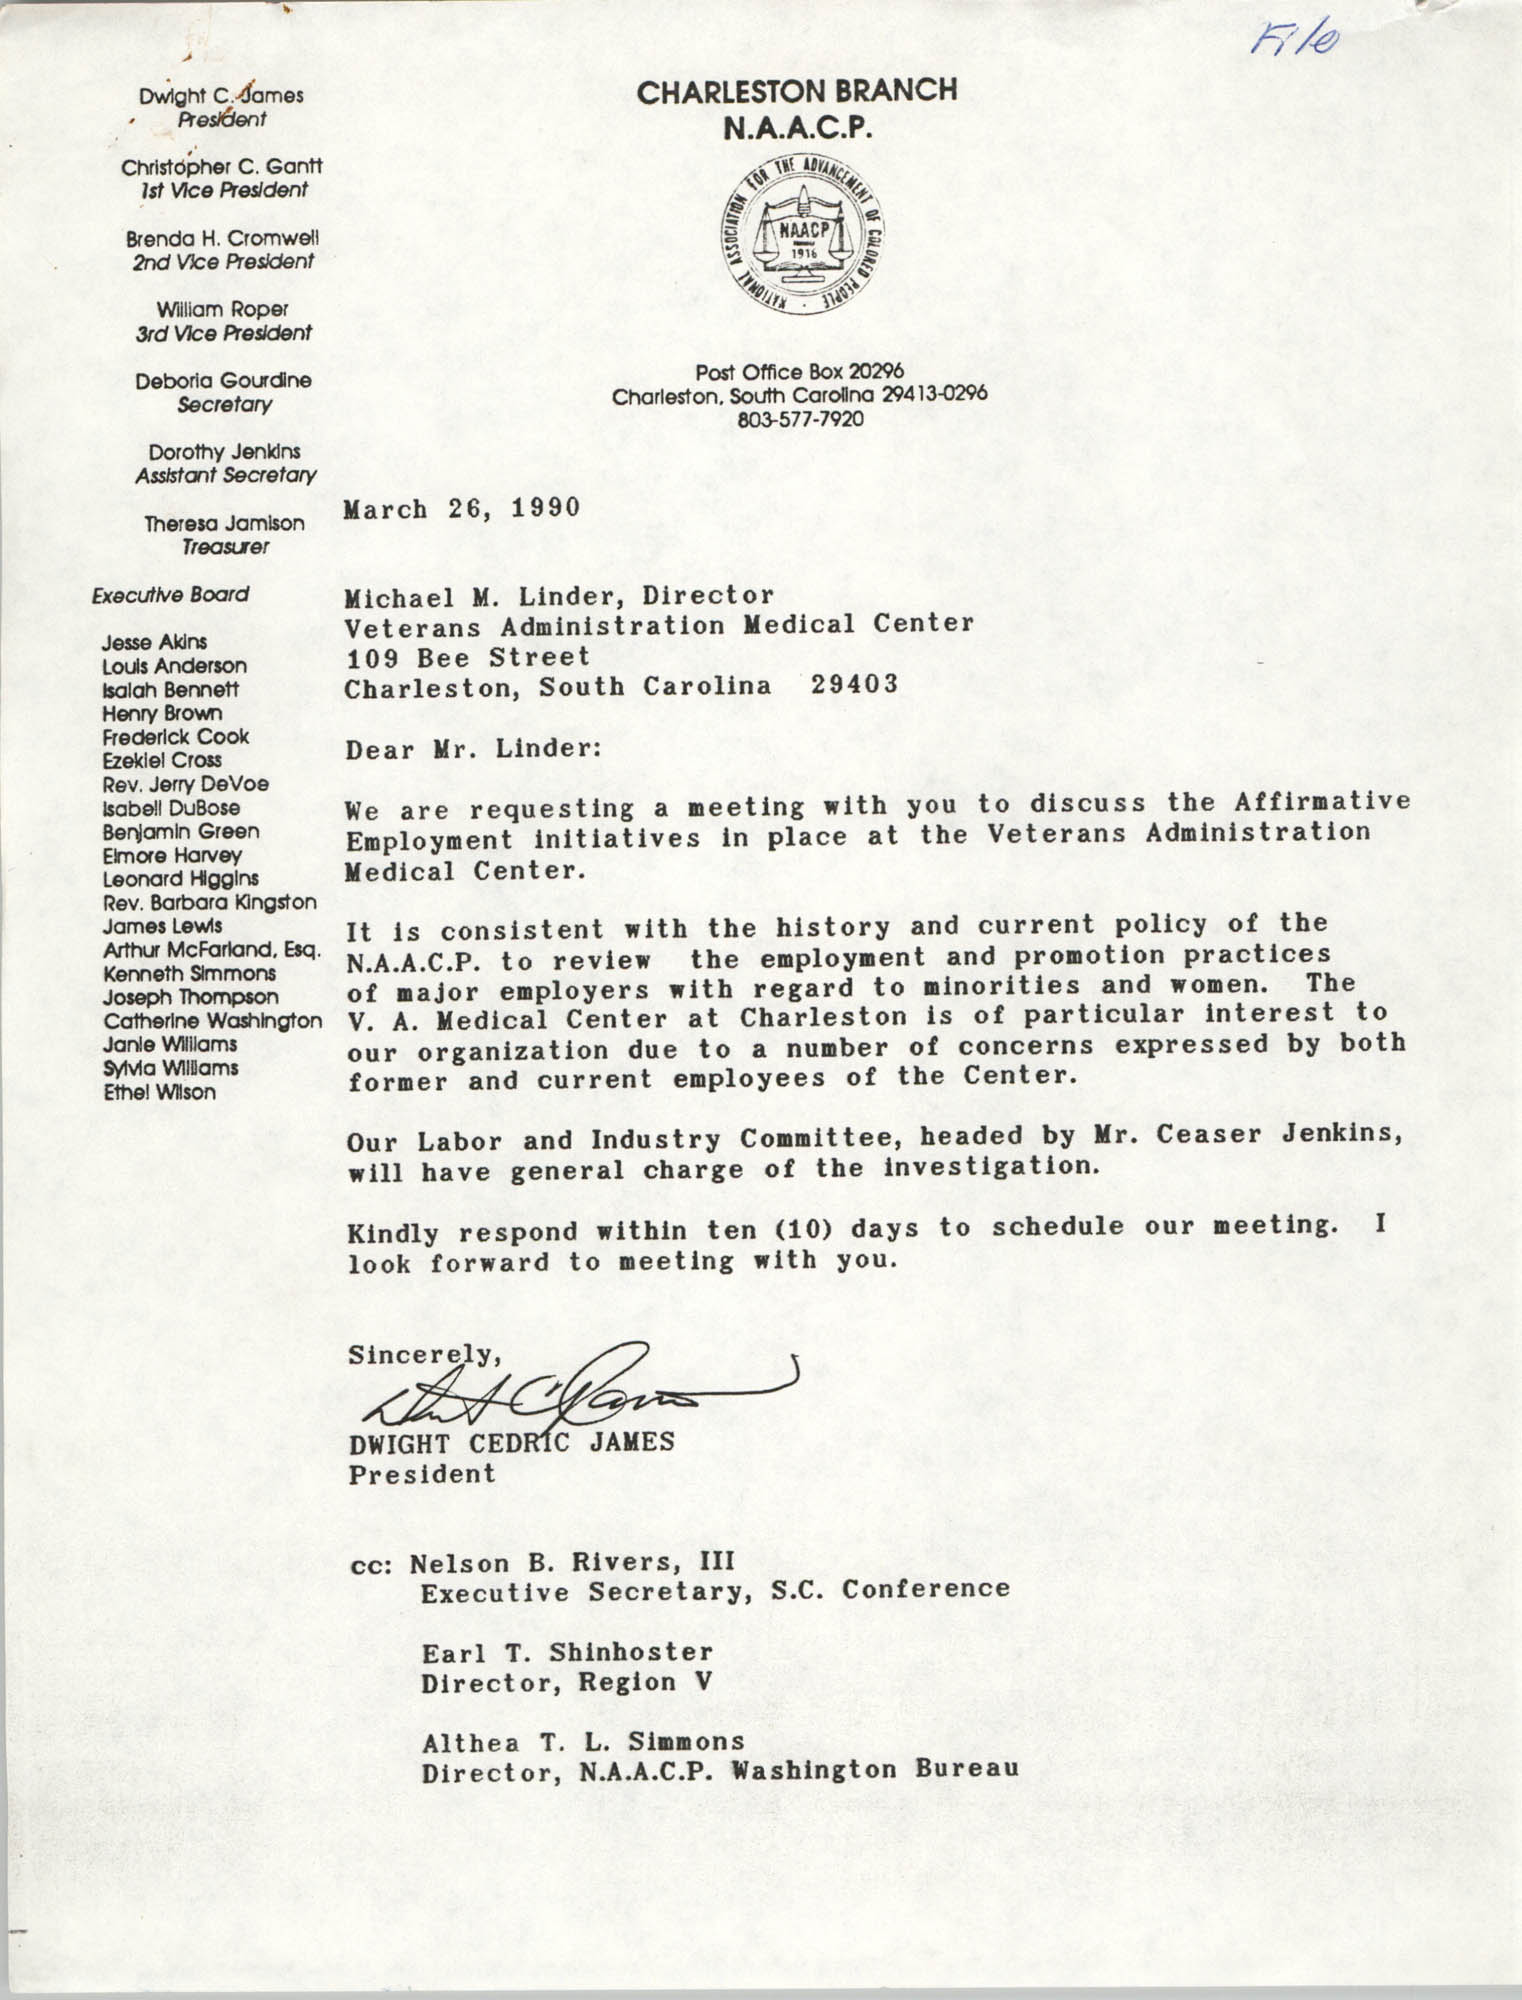 Letter from Dwight C. James to Michael M. Linder, March 26, 1990